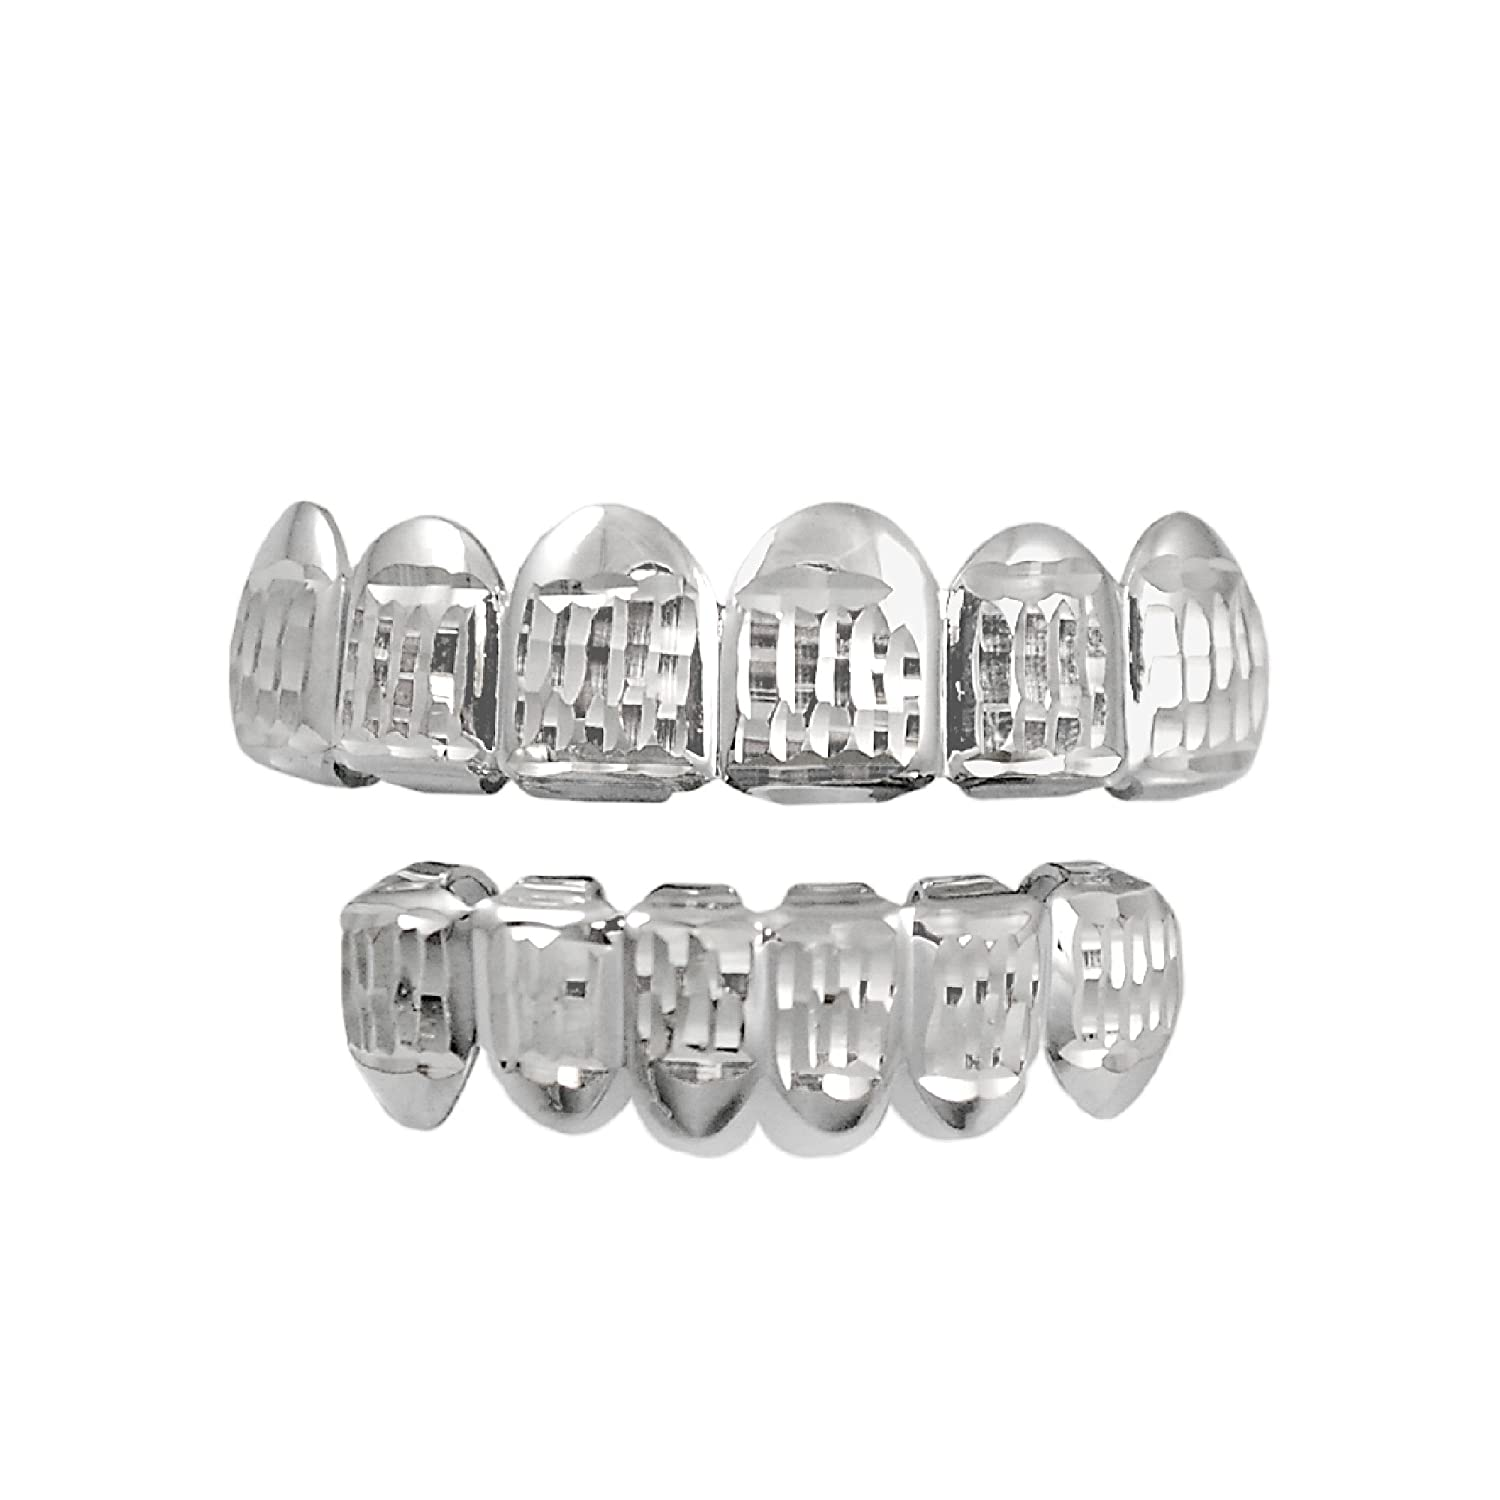 Silver-Tone Hip Hop Bling Vertical Diamond Cut 6 Pc Top and Bottom Grillz Grill Set iRockBling 5234796